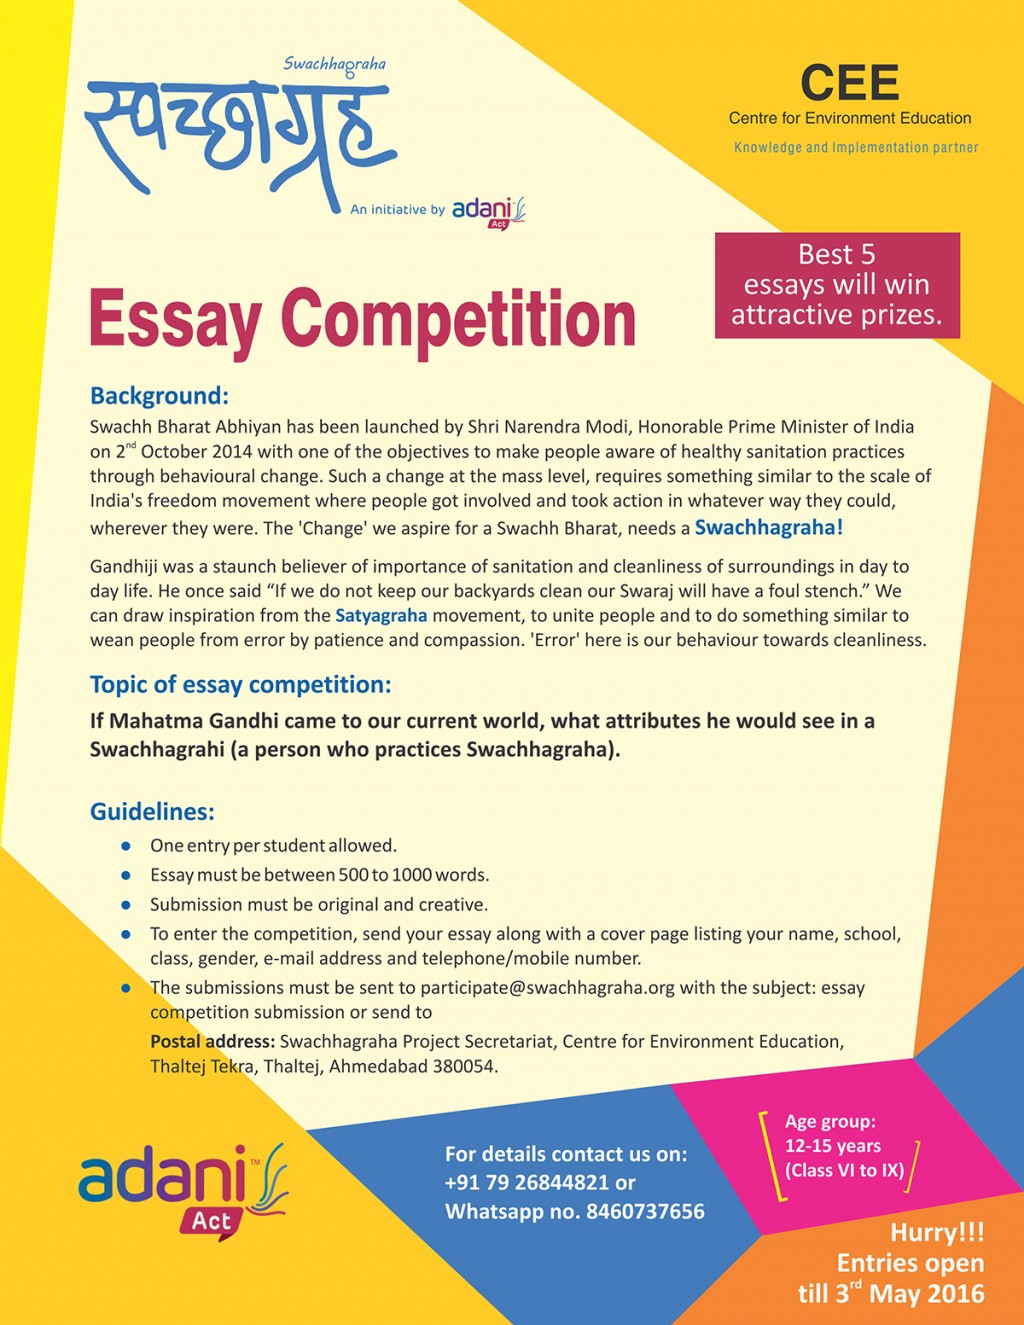 011 20180129171946essay20competition Essay About Cleanliness In School Phenomenal On Toilet And Its Surrounding Writing Hygiene Practices Large